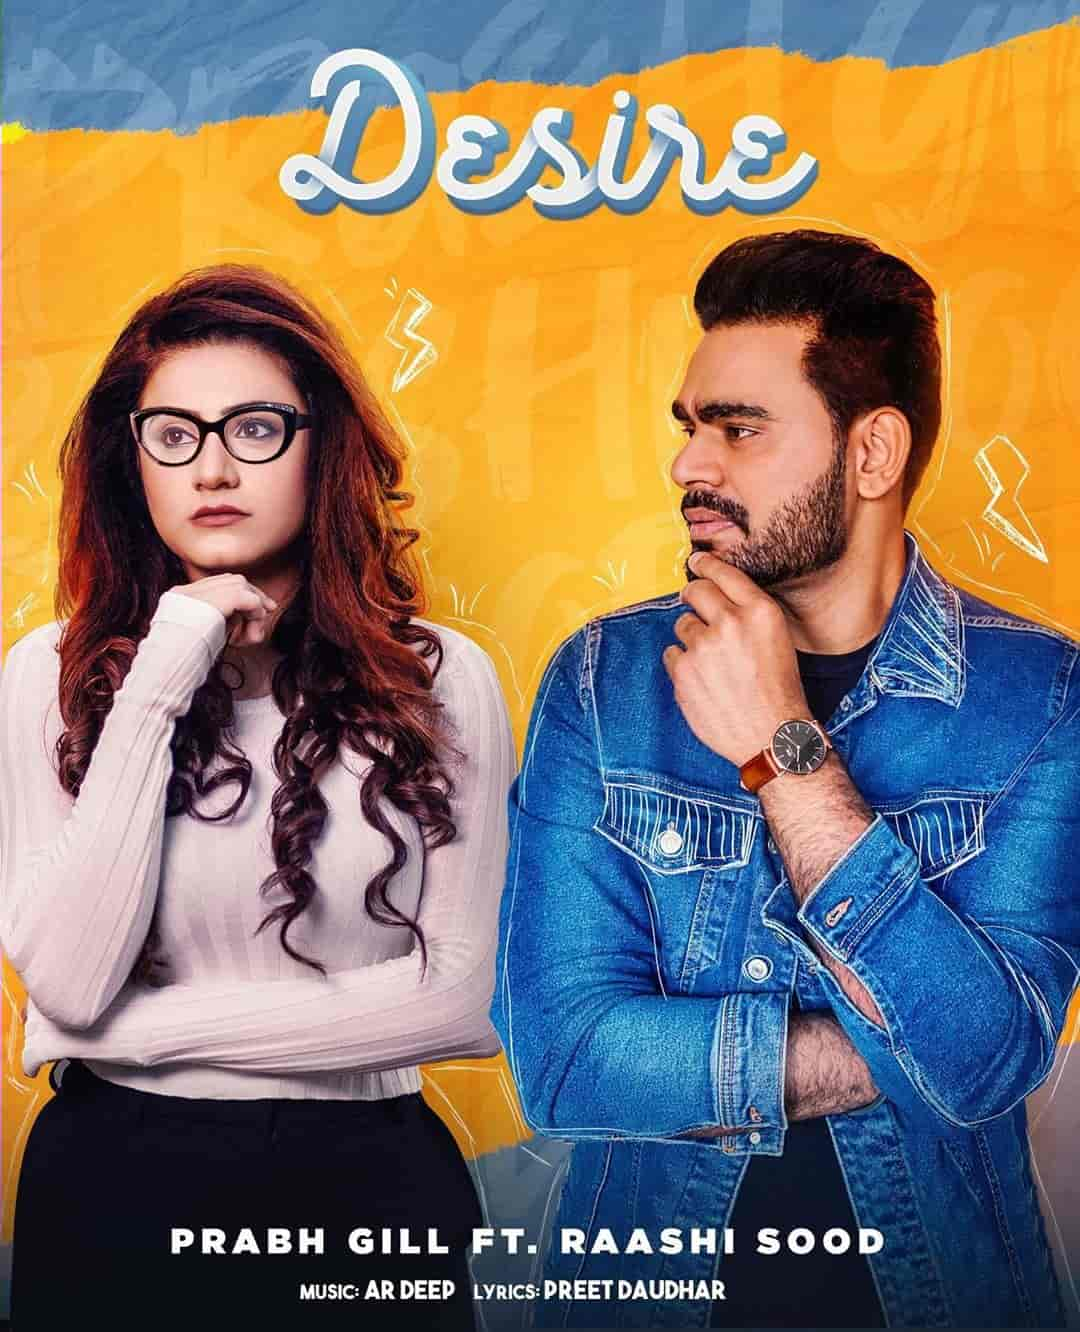 Desire Beautiful Song Image By Prabh Gill and Raashi Sood